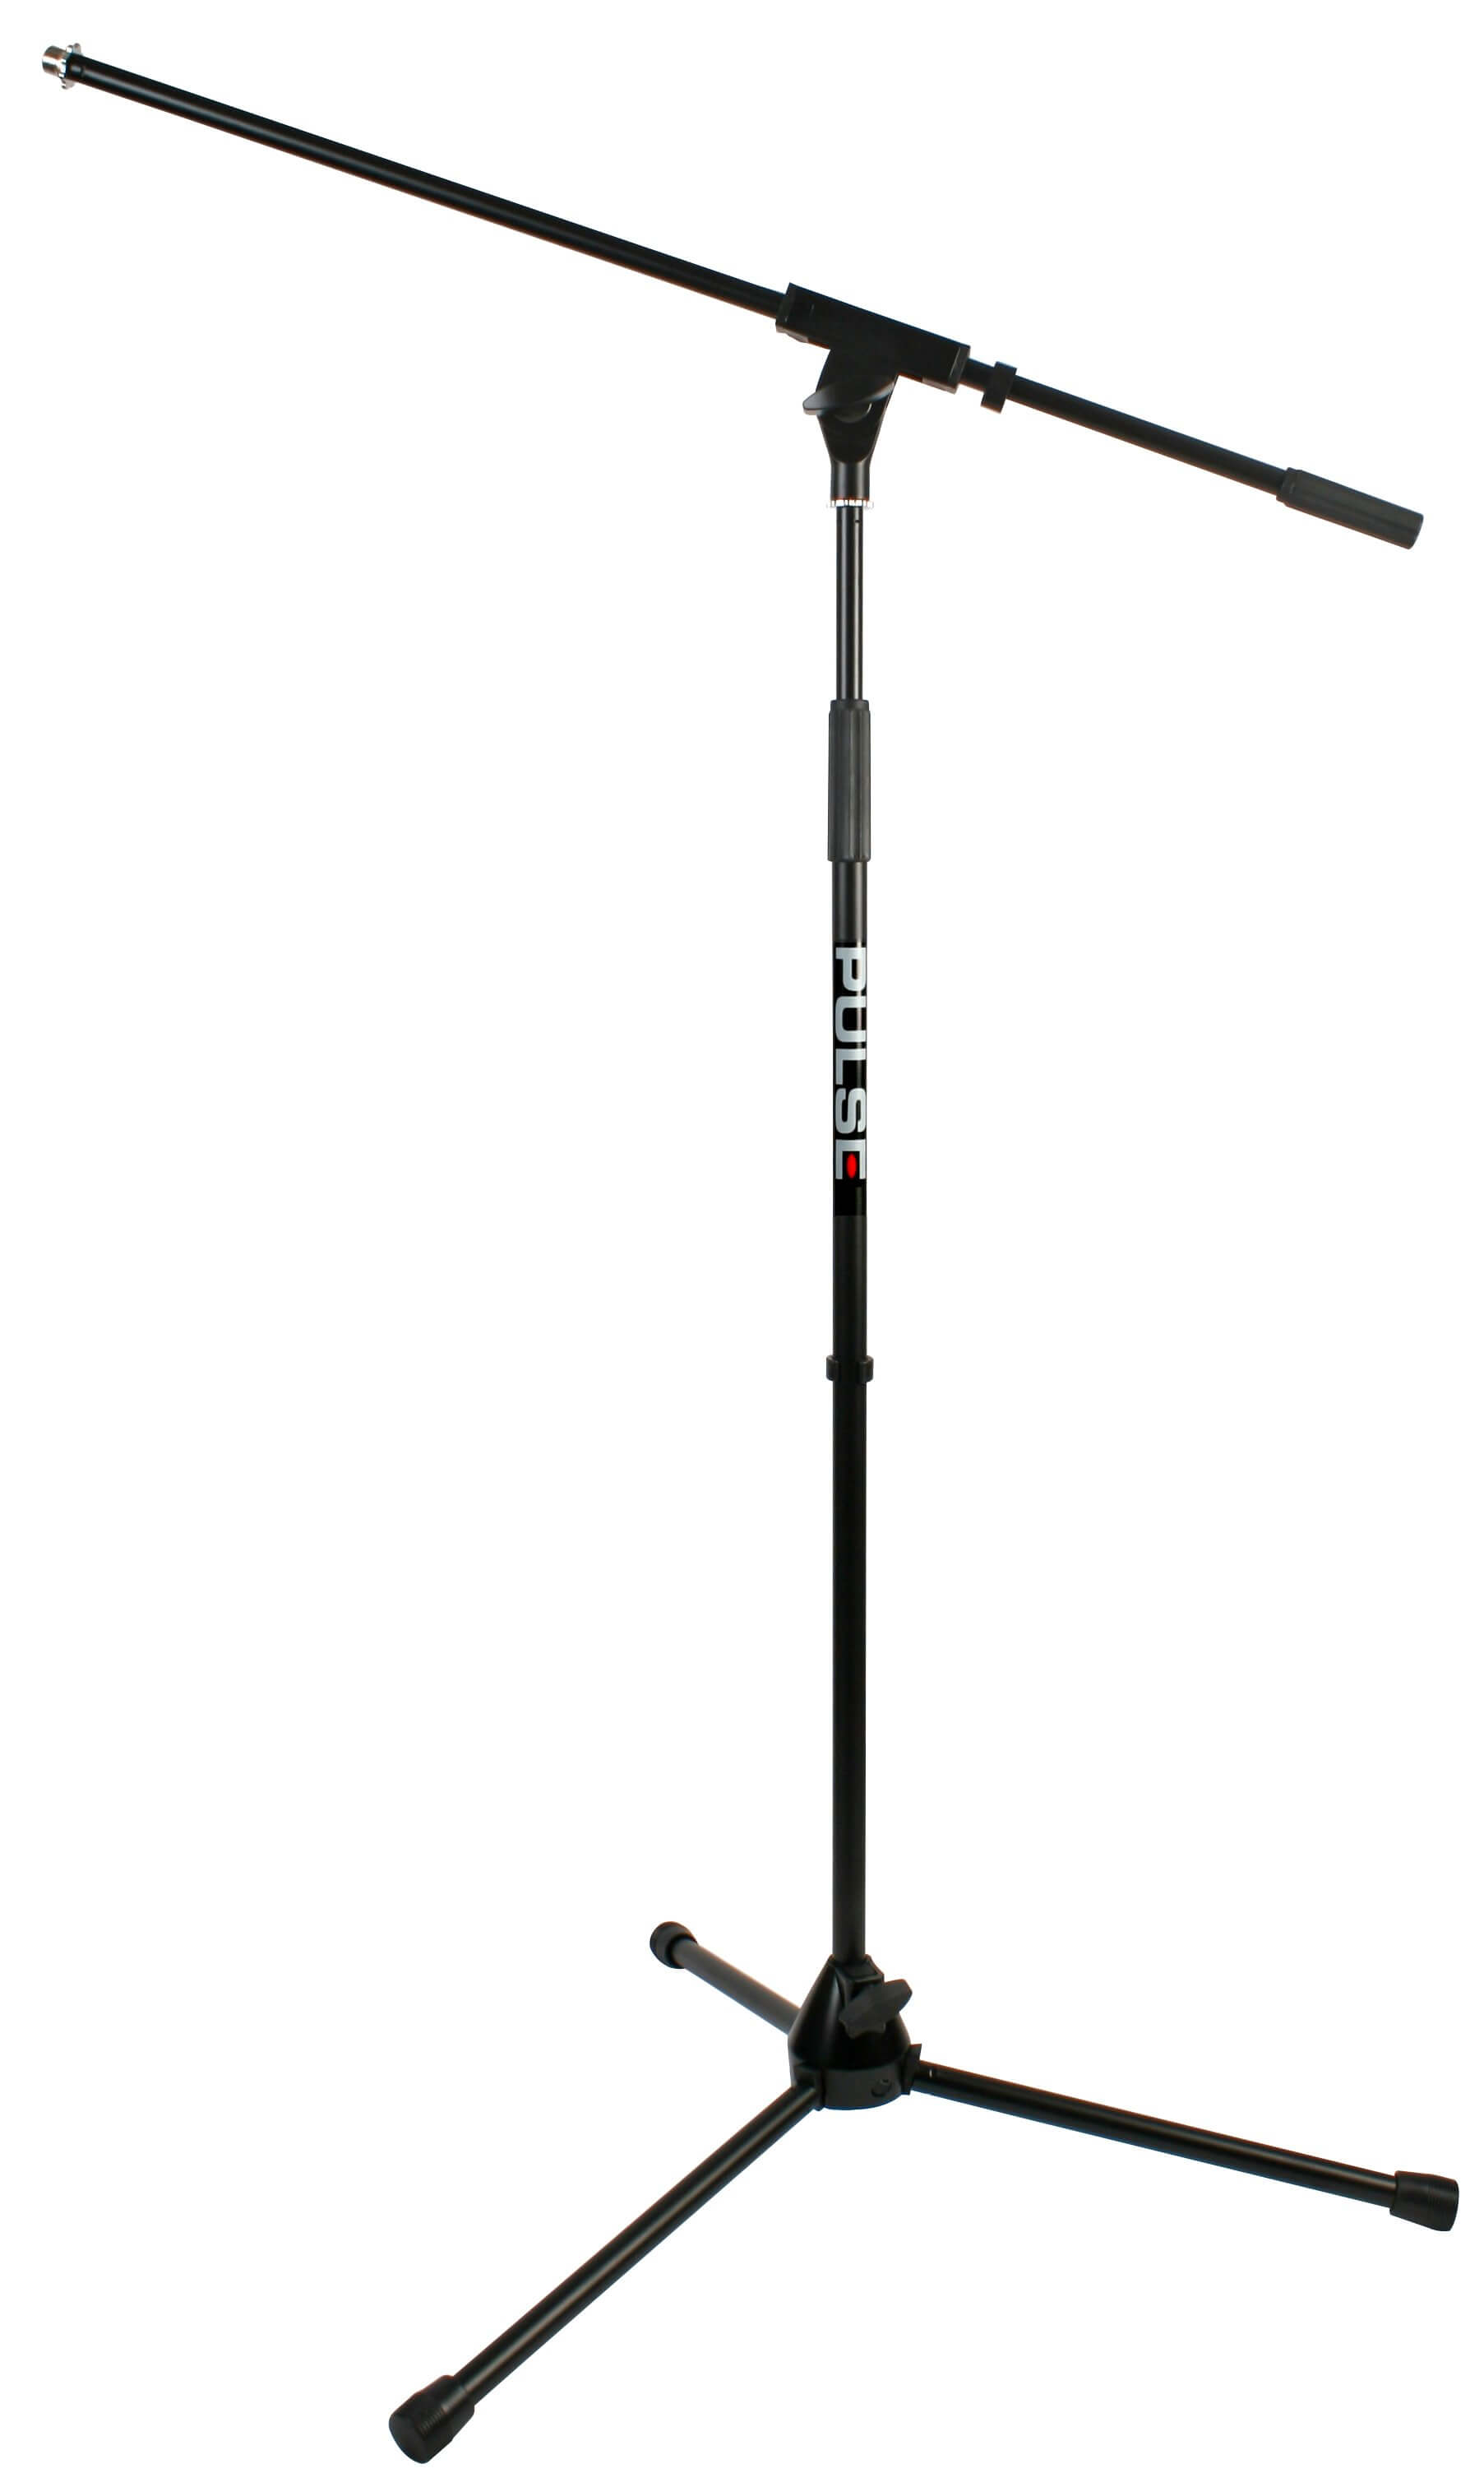 Pulse Adjustable Black Boom Microphone Stand